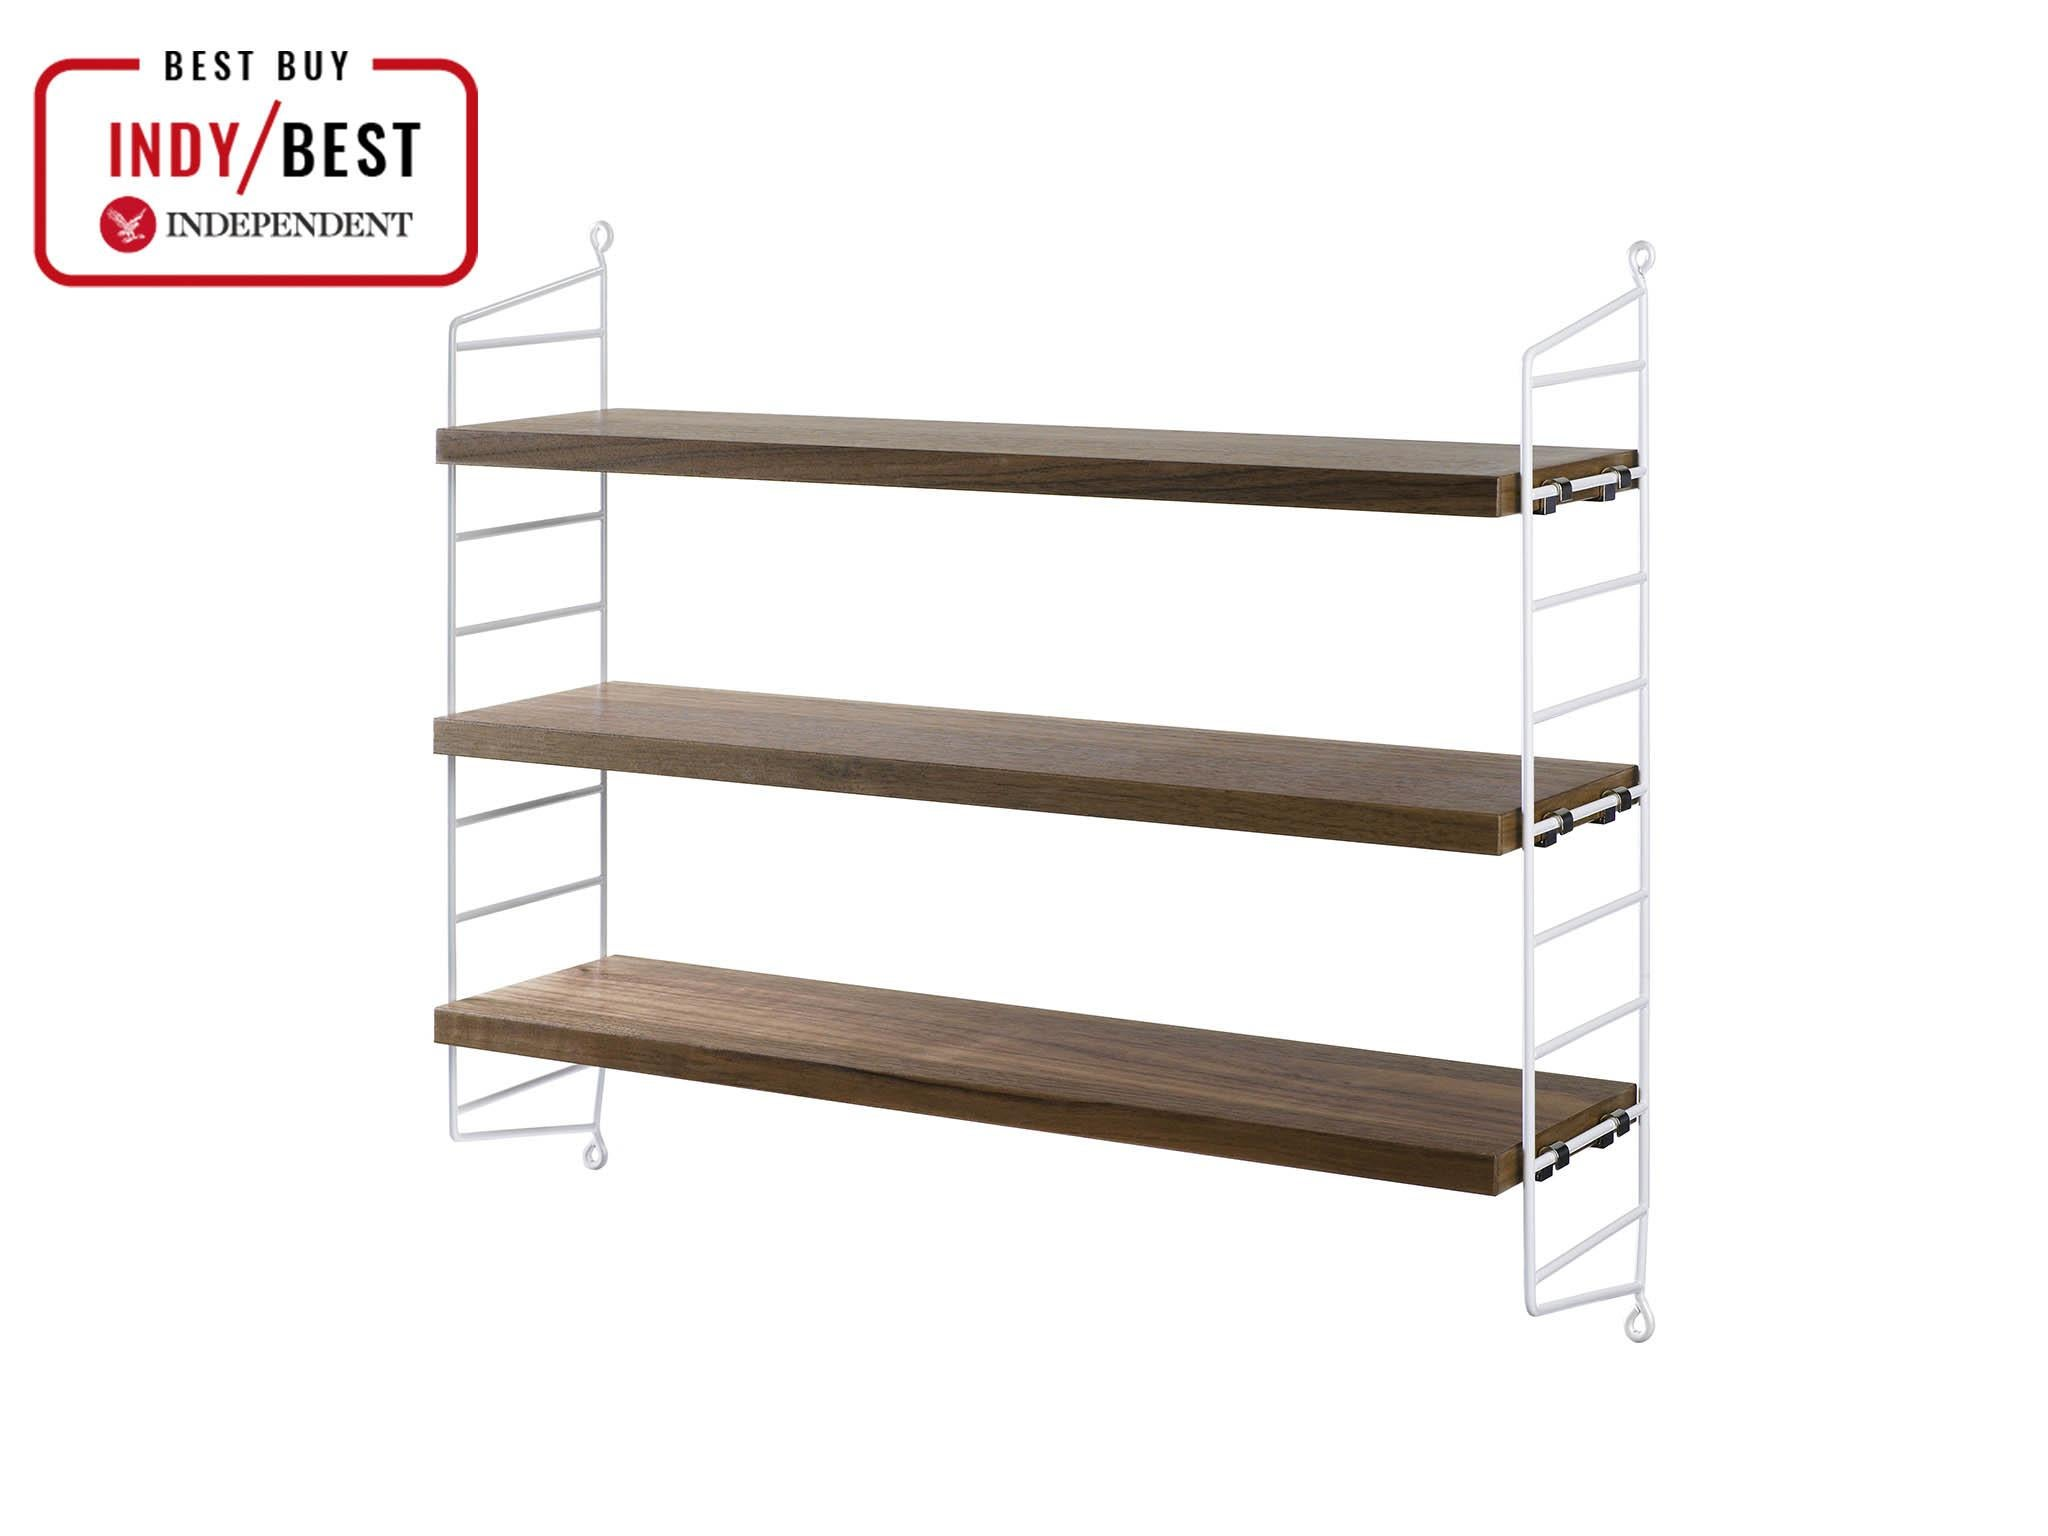 10 Best Wall Shelves | The Independent